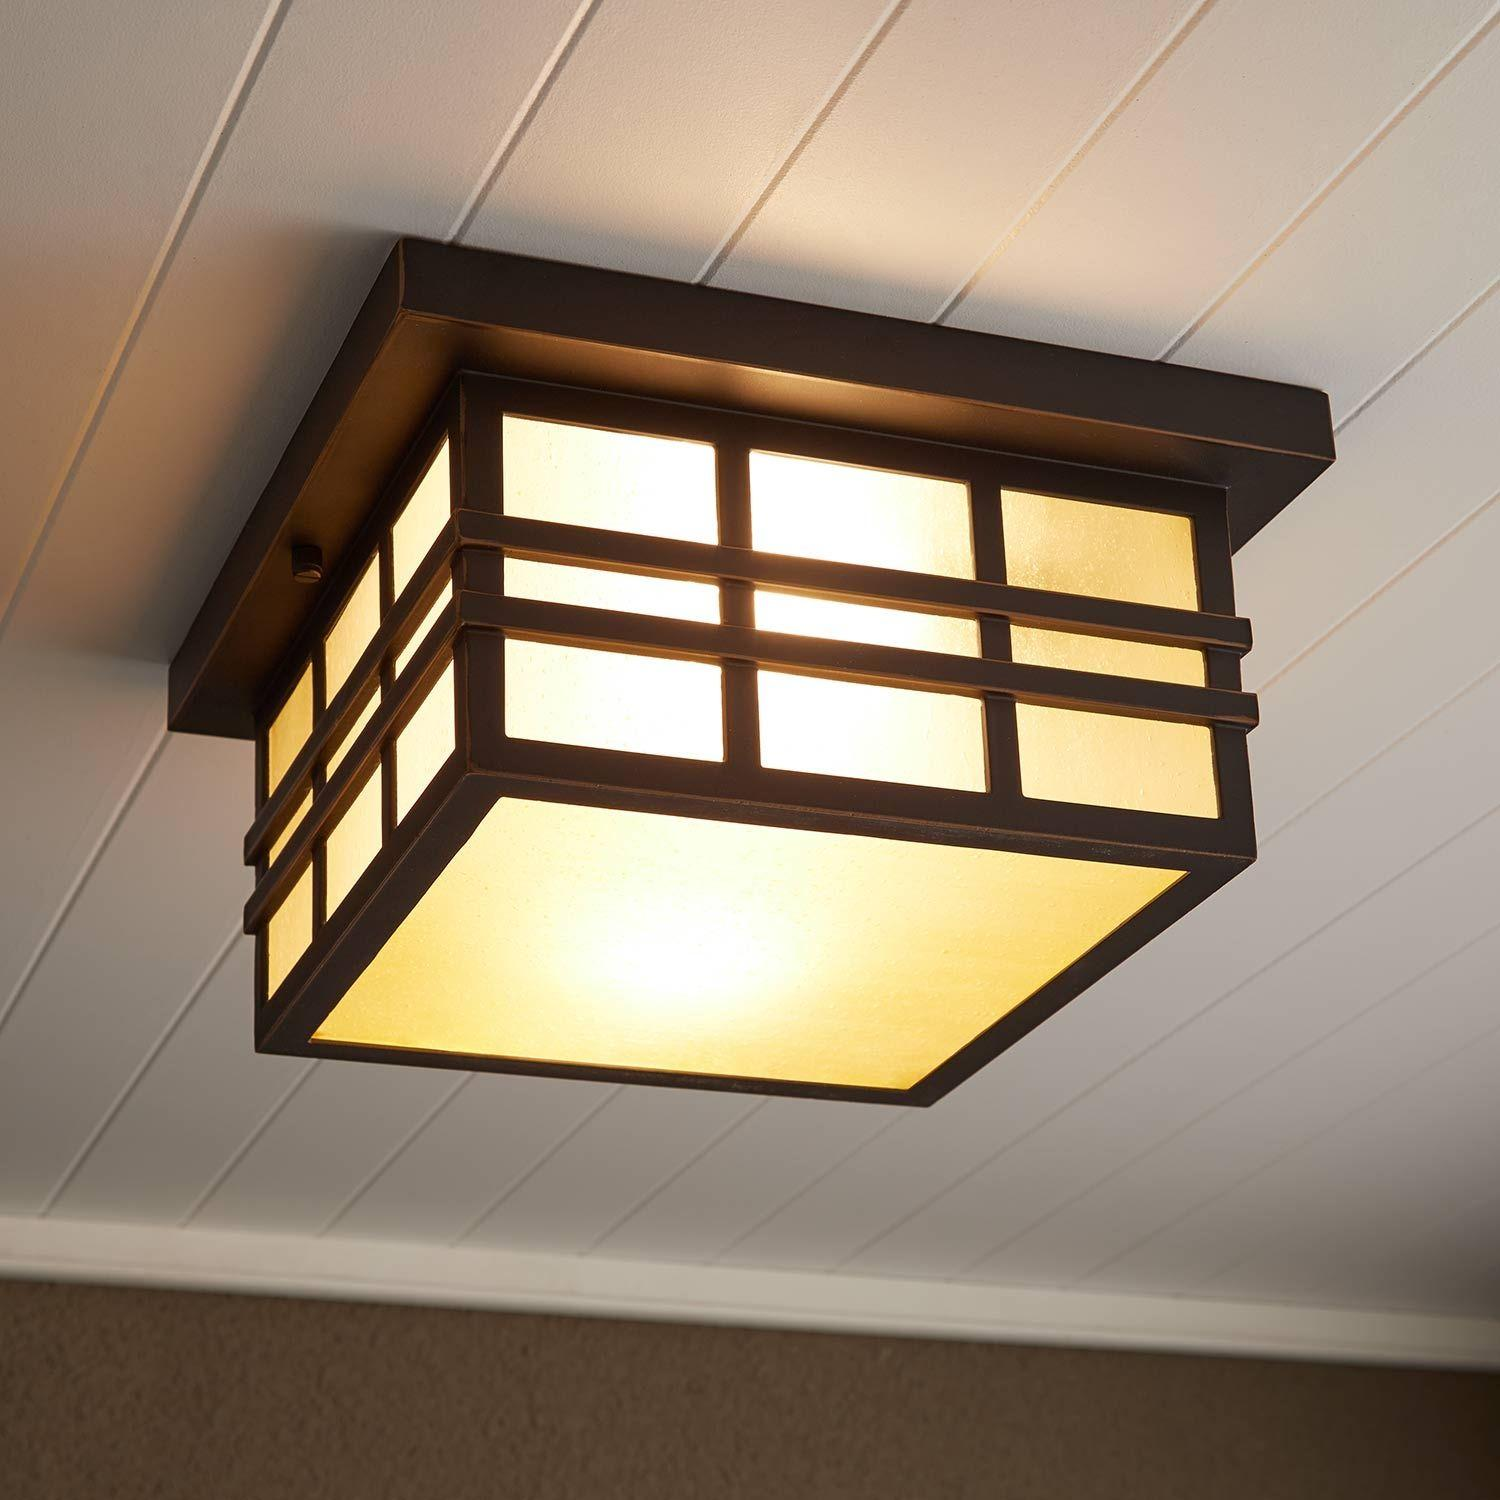 Ambler 2 Light Flush Mount Outdoor Ceiling Fixture Amber Seeded Outdoor Lighting Lighting